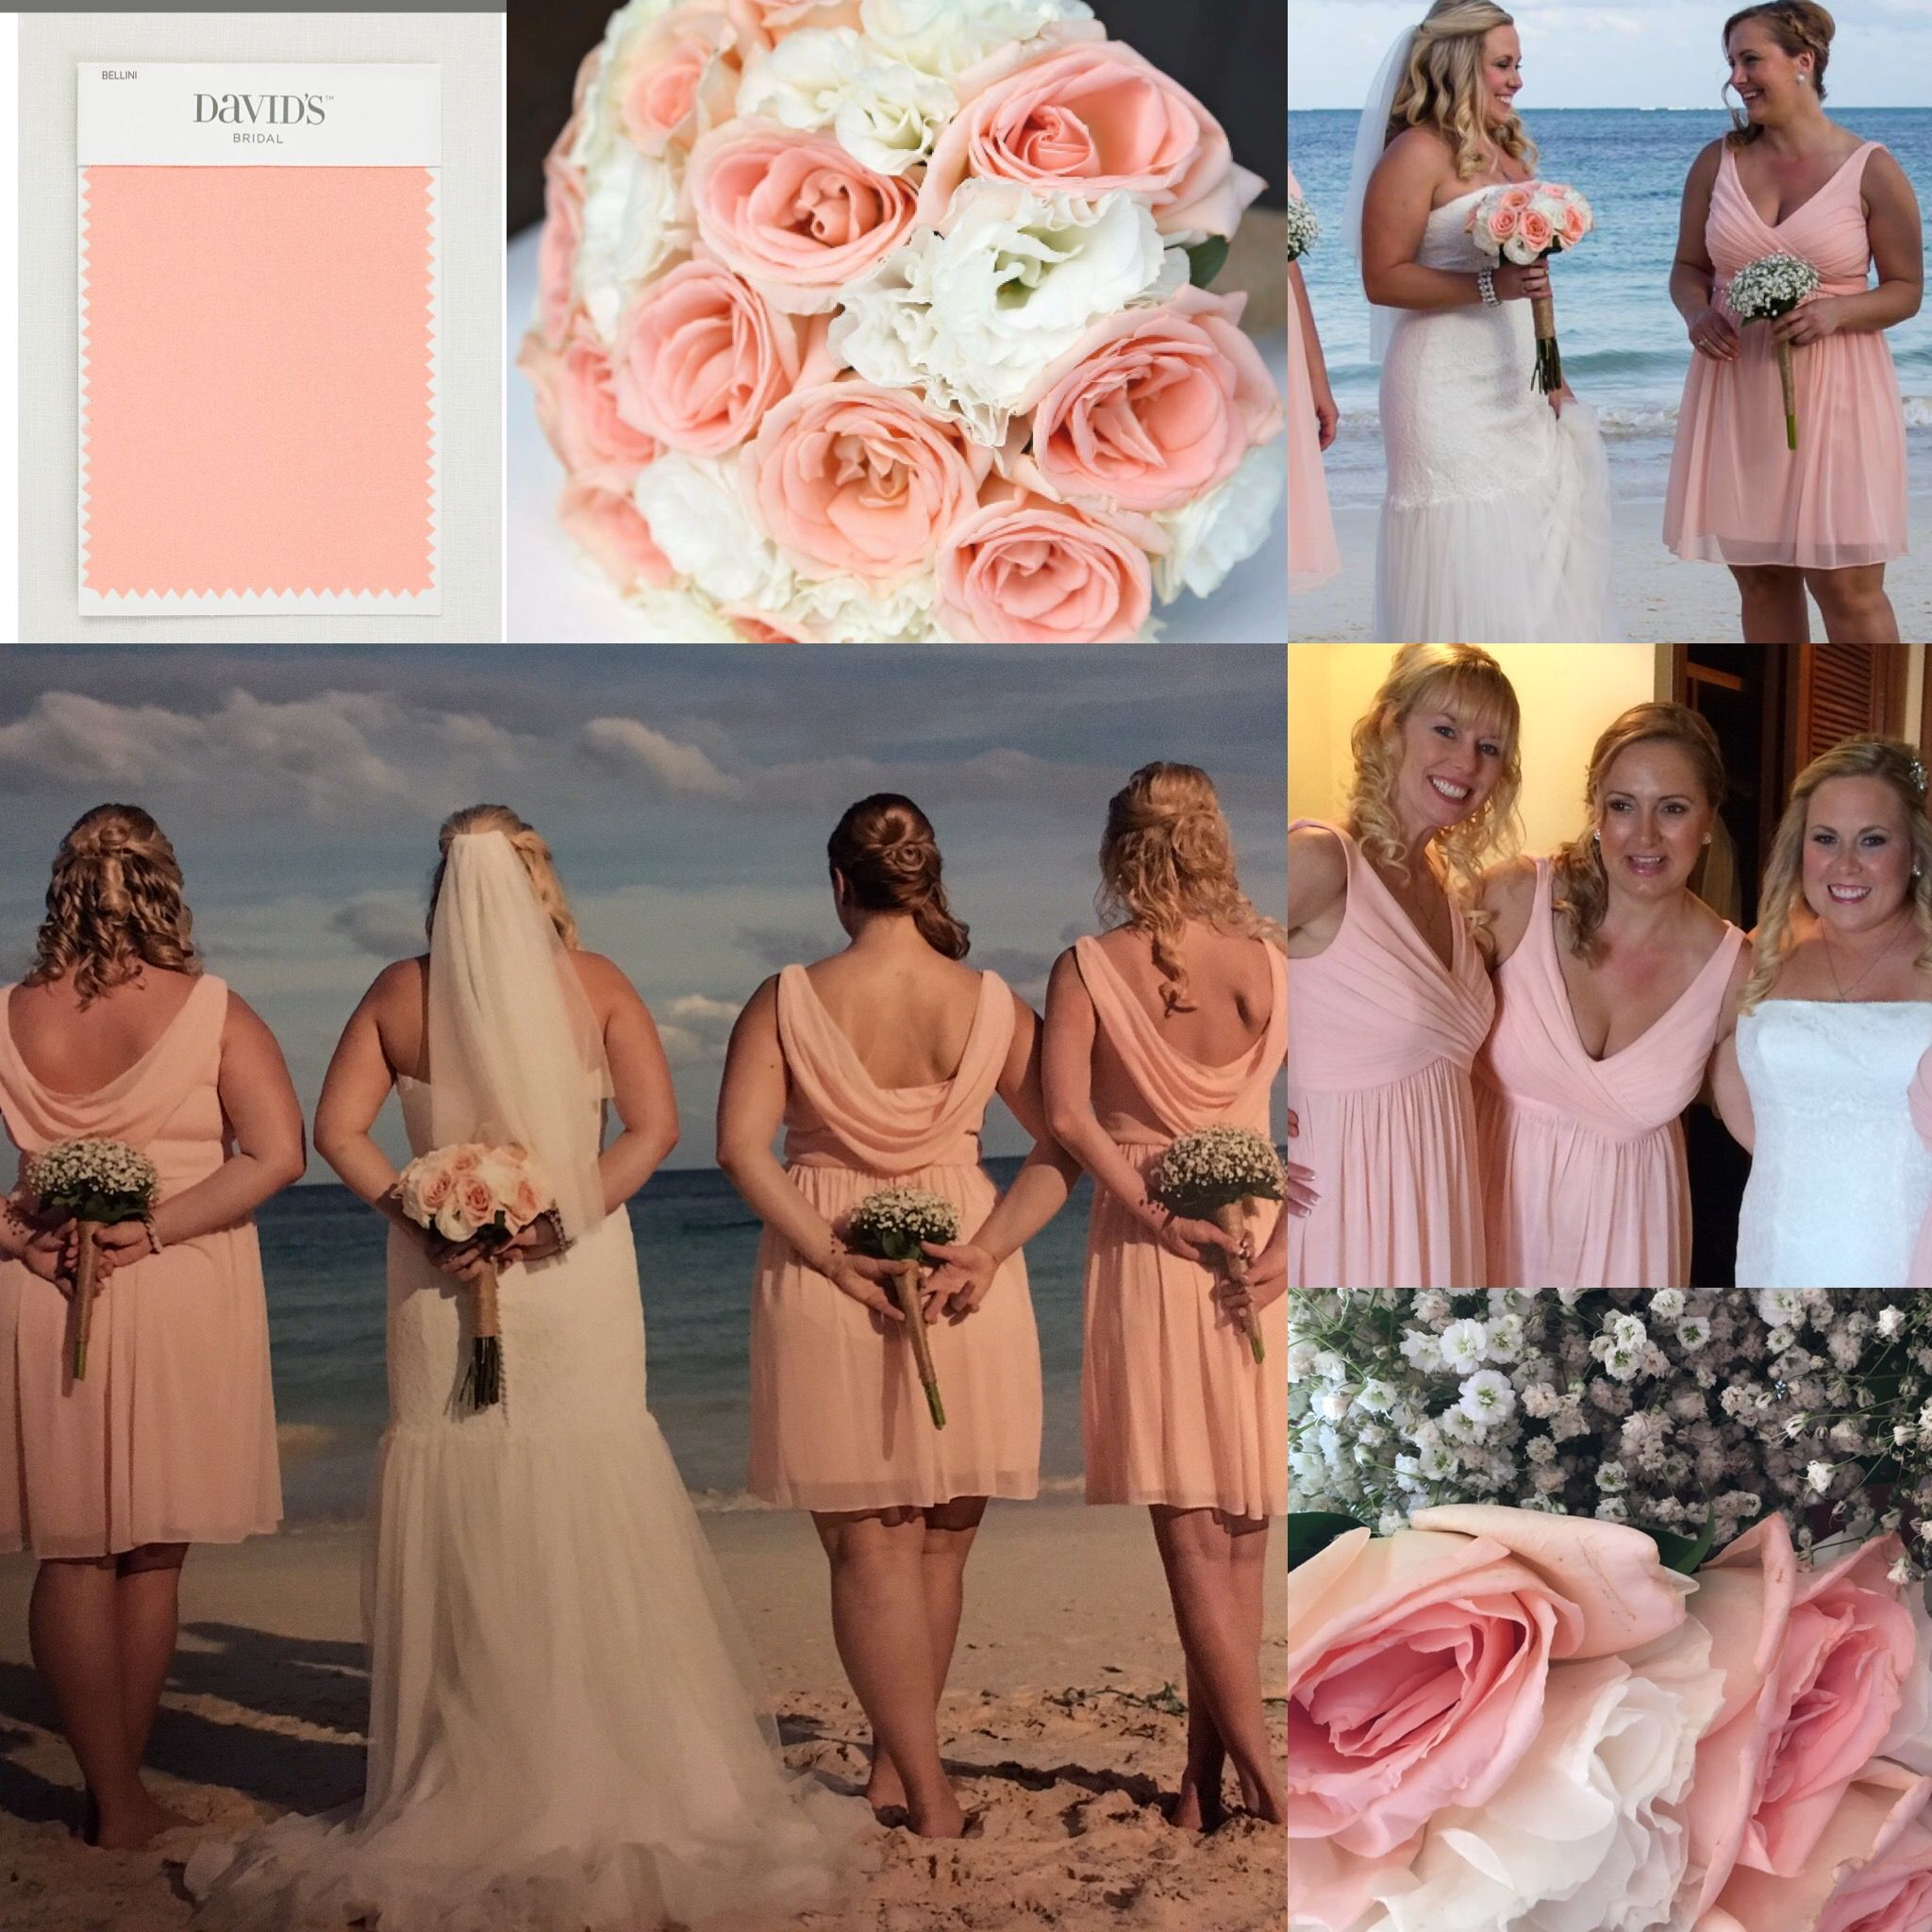 Bridesmaid girls beach color peach bellini babys breath bridesmaid girls beach color peach bellini babys breath bouquet beach wedding bridesmaid dressesdavid ombrellifo Choice Image